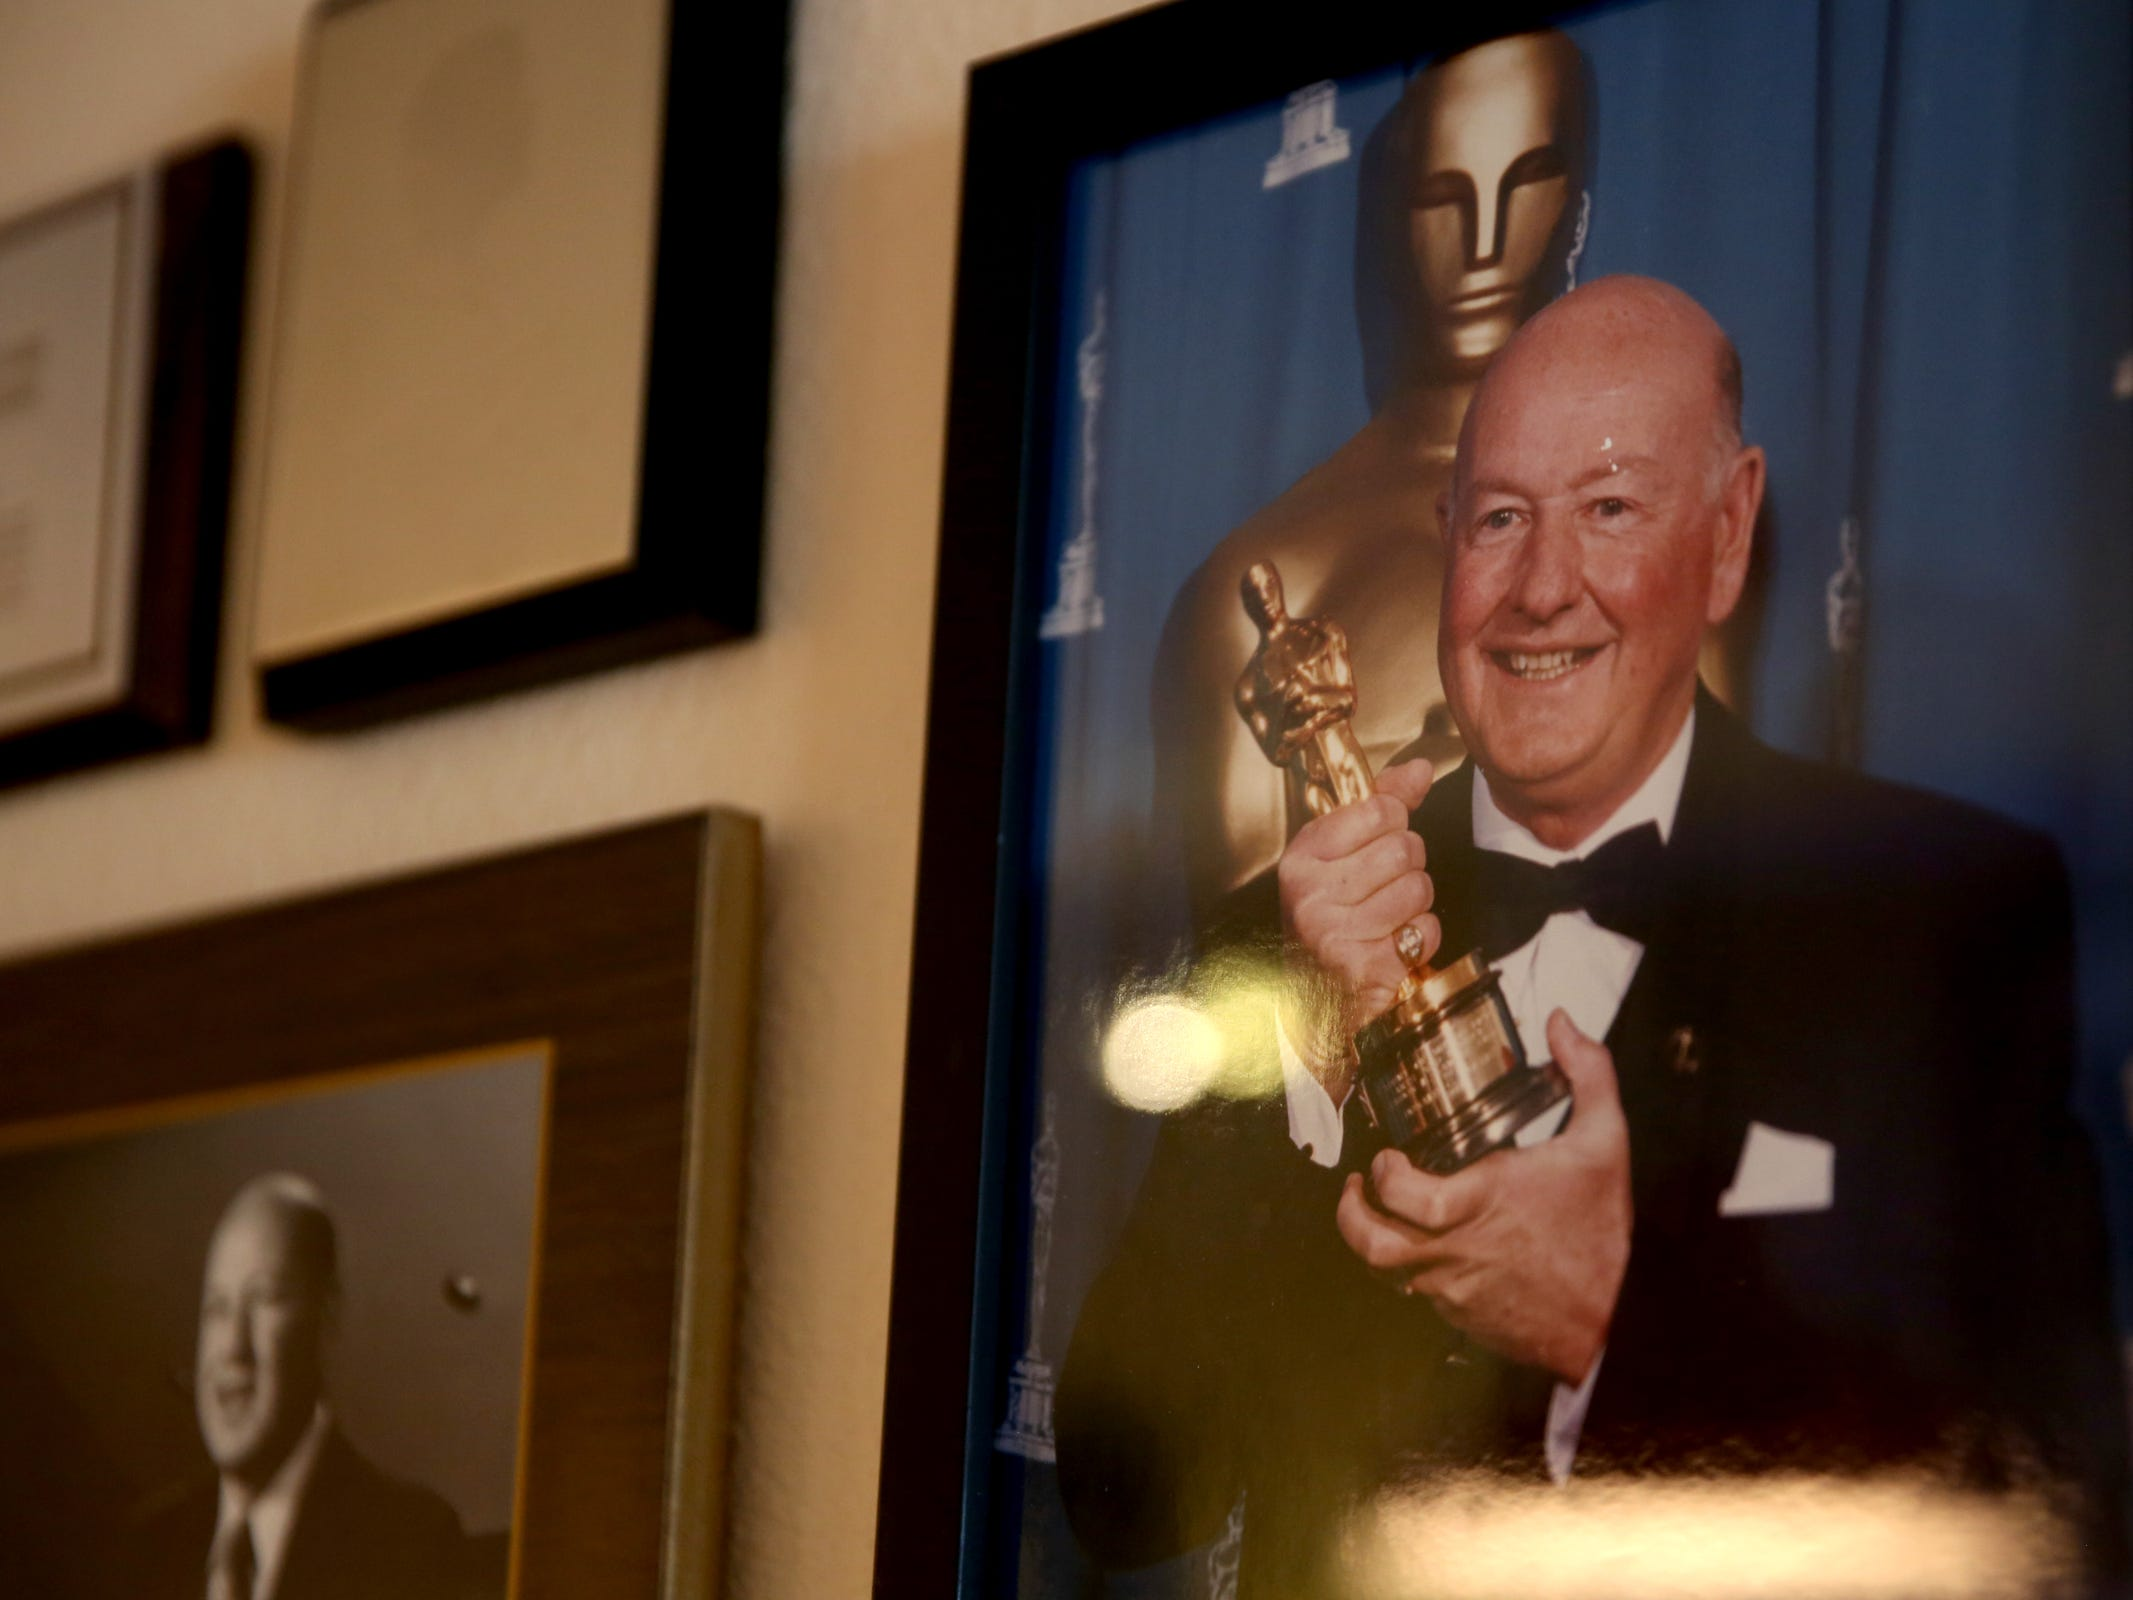 Memorabilia from his career in film is displayed at Don Rogers' home near Salem on Wednesday, Feb. 6, 2019. He received an Oscar for lifetime achievement in sound in 1996.